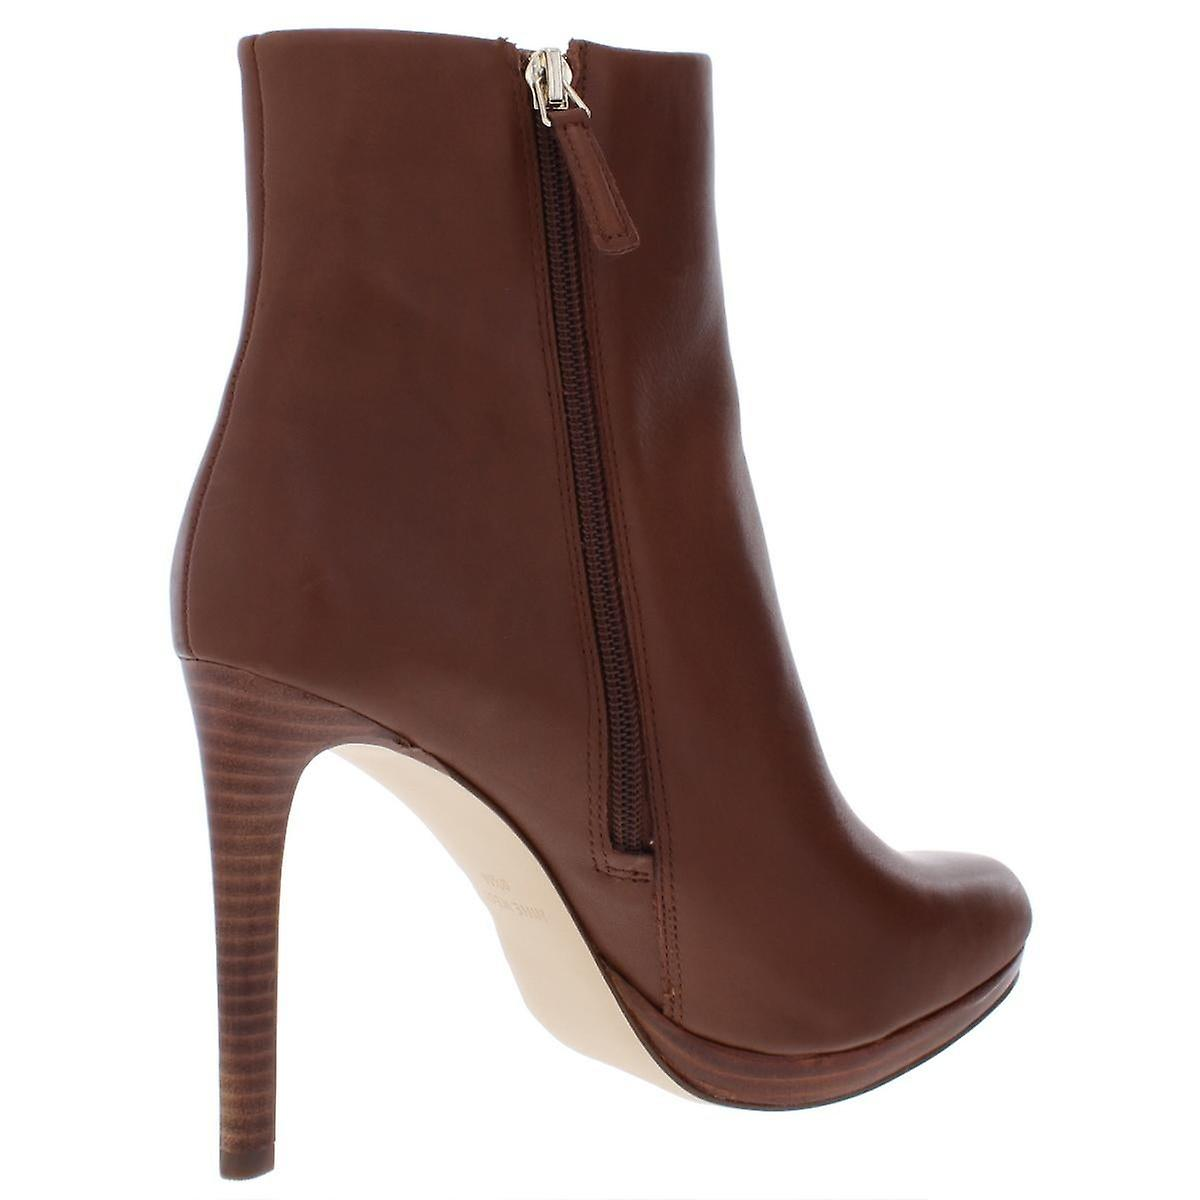 Nine West Womens quanette Leather Almond Toe Ankle Fashion Boots